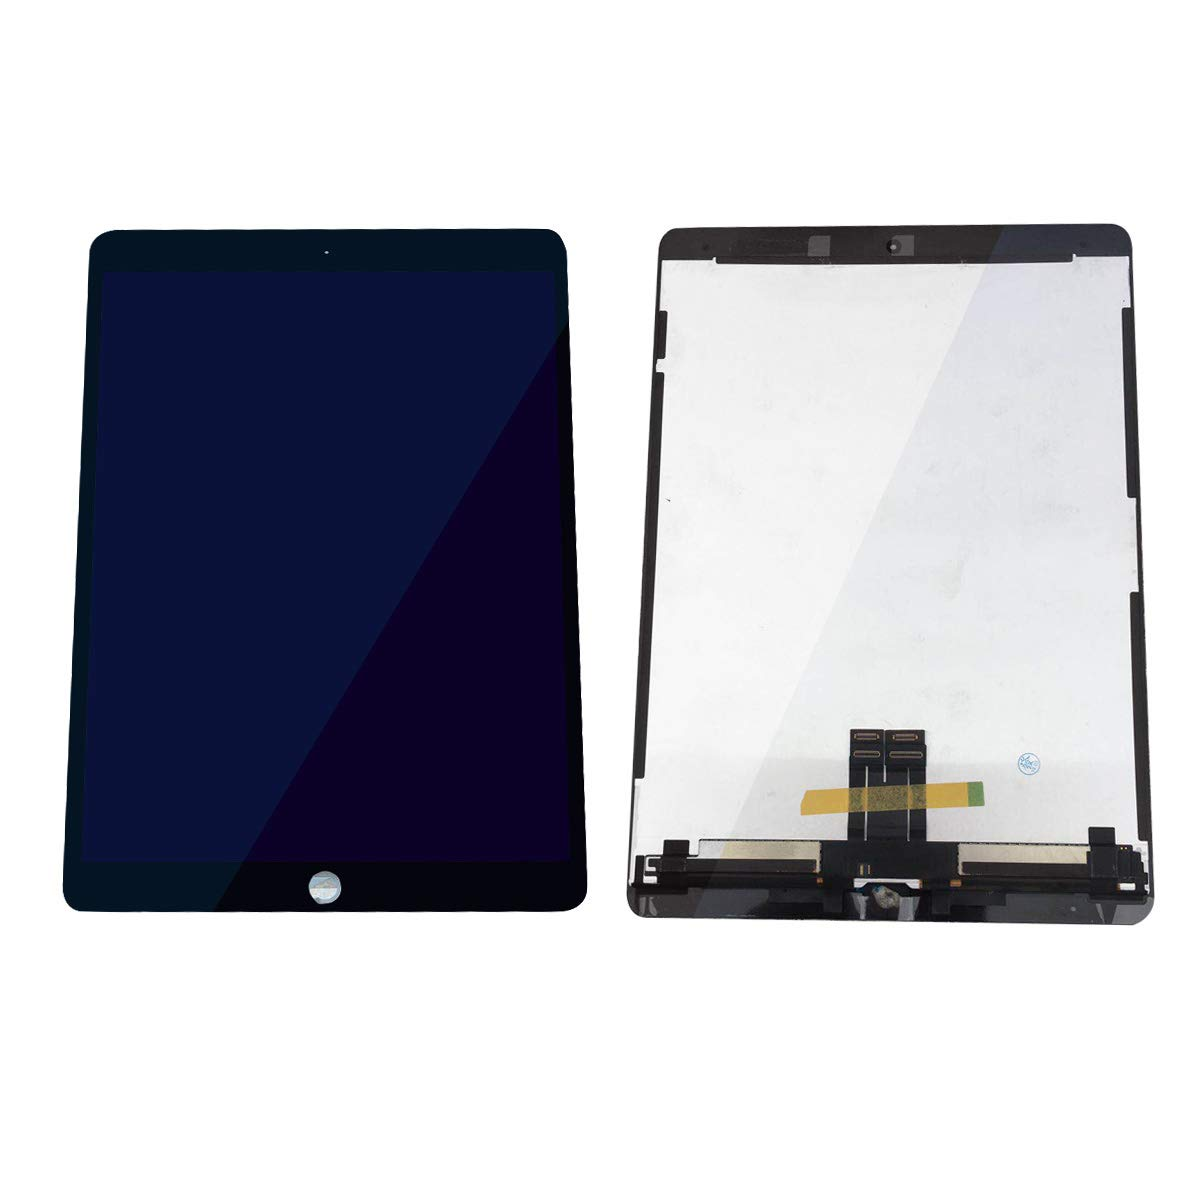 (Swifthorse) Replacement LCD Touch Screen Assembly Compatible with IPAD Pro 10.5 Inch Model A1701 A1709(Black) + Free Teardown Tool by Swifthorse (Image #1)